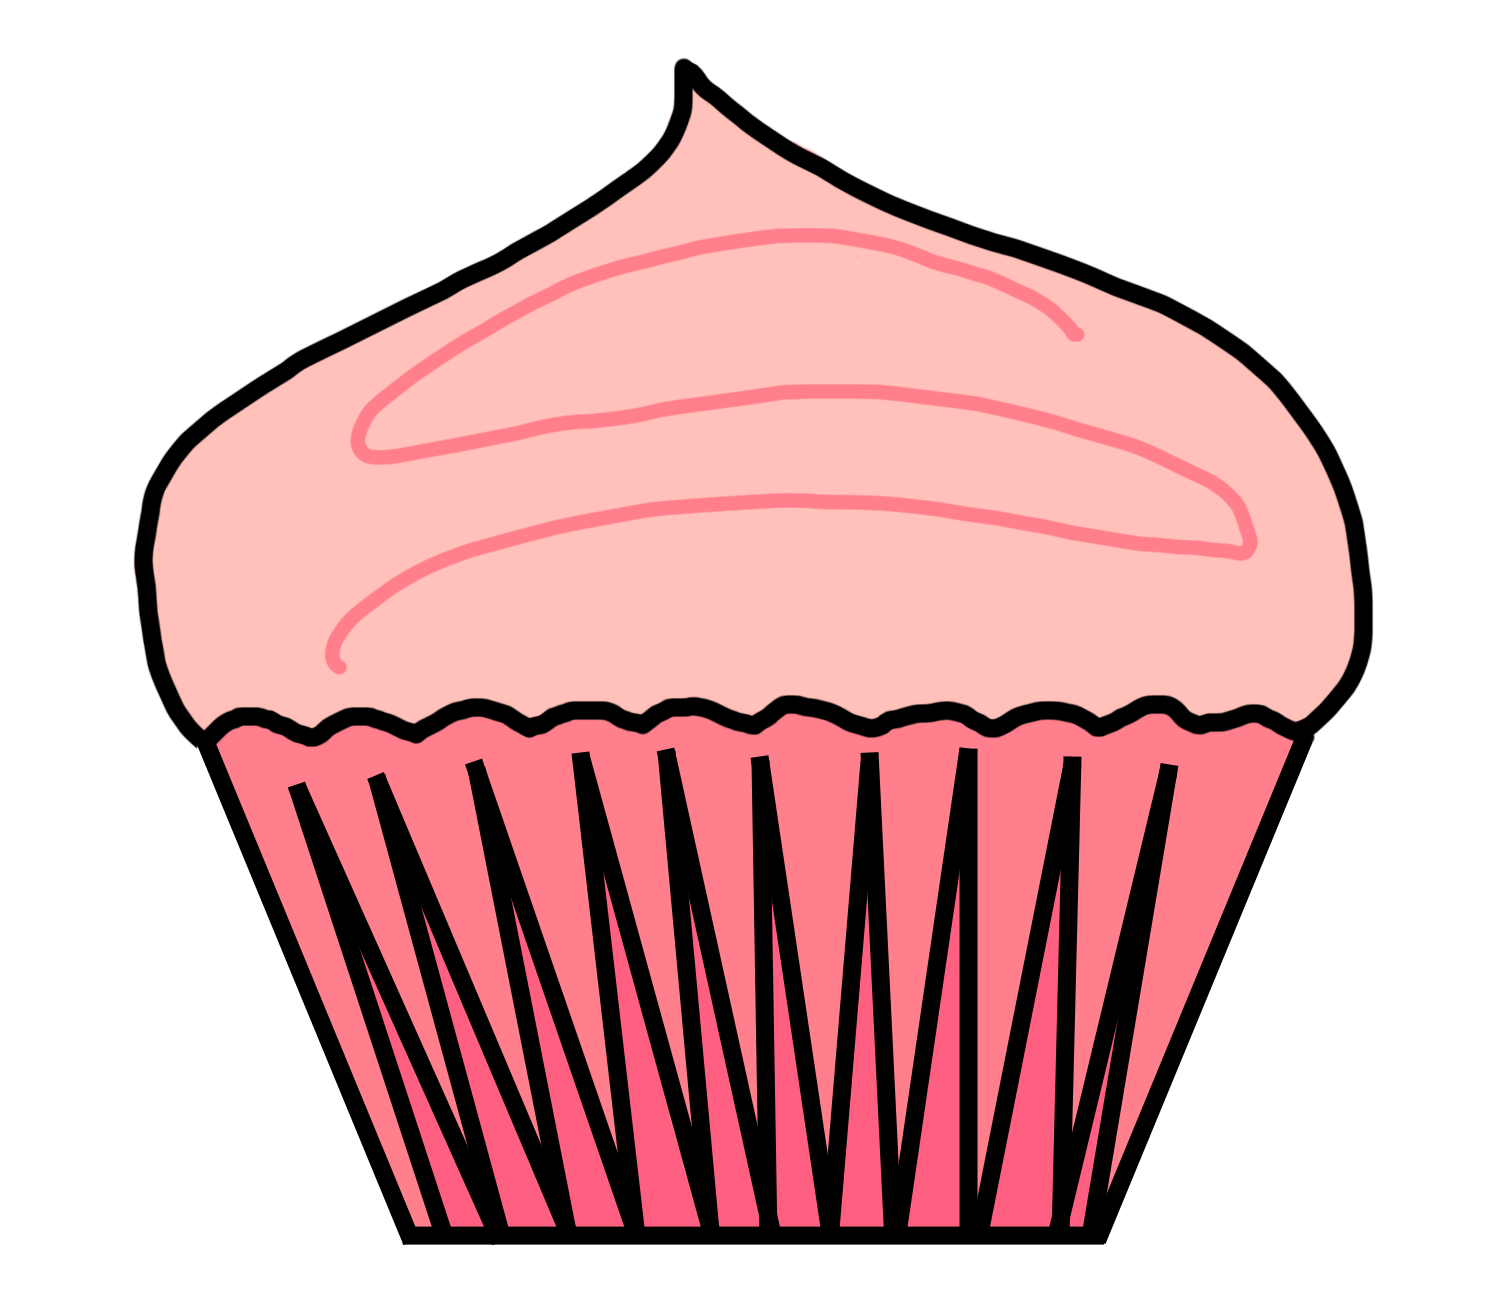 Cupcake Clipart no Background Cupcake Clipart Portal